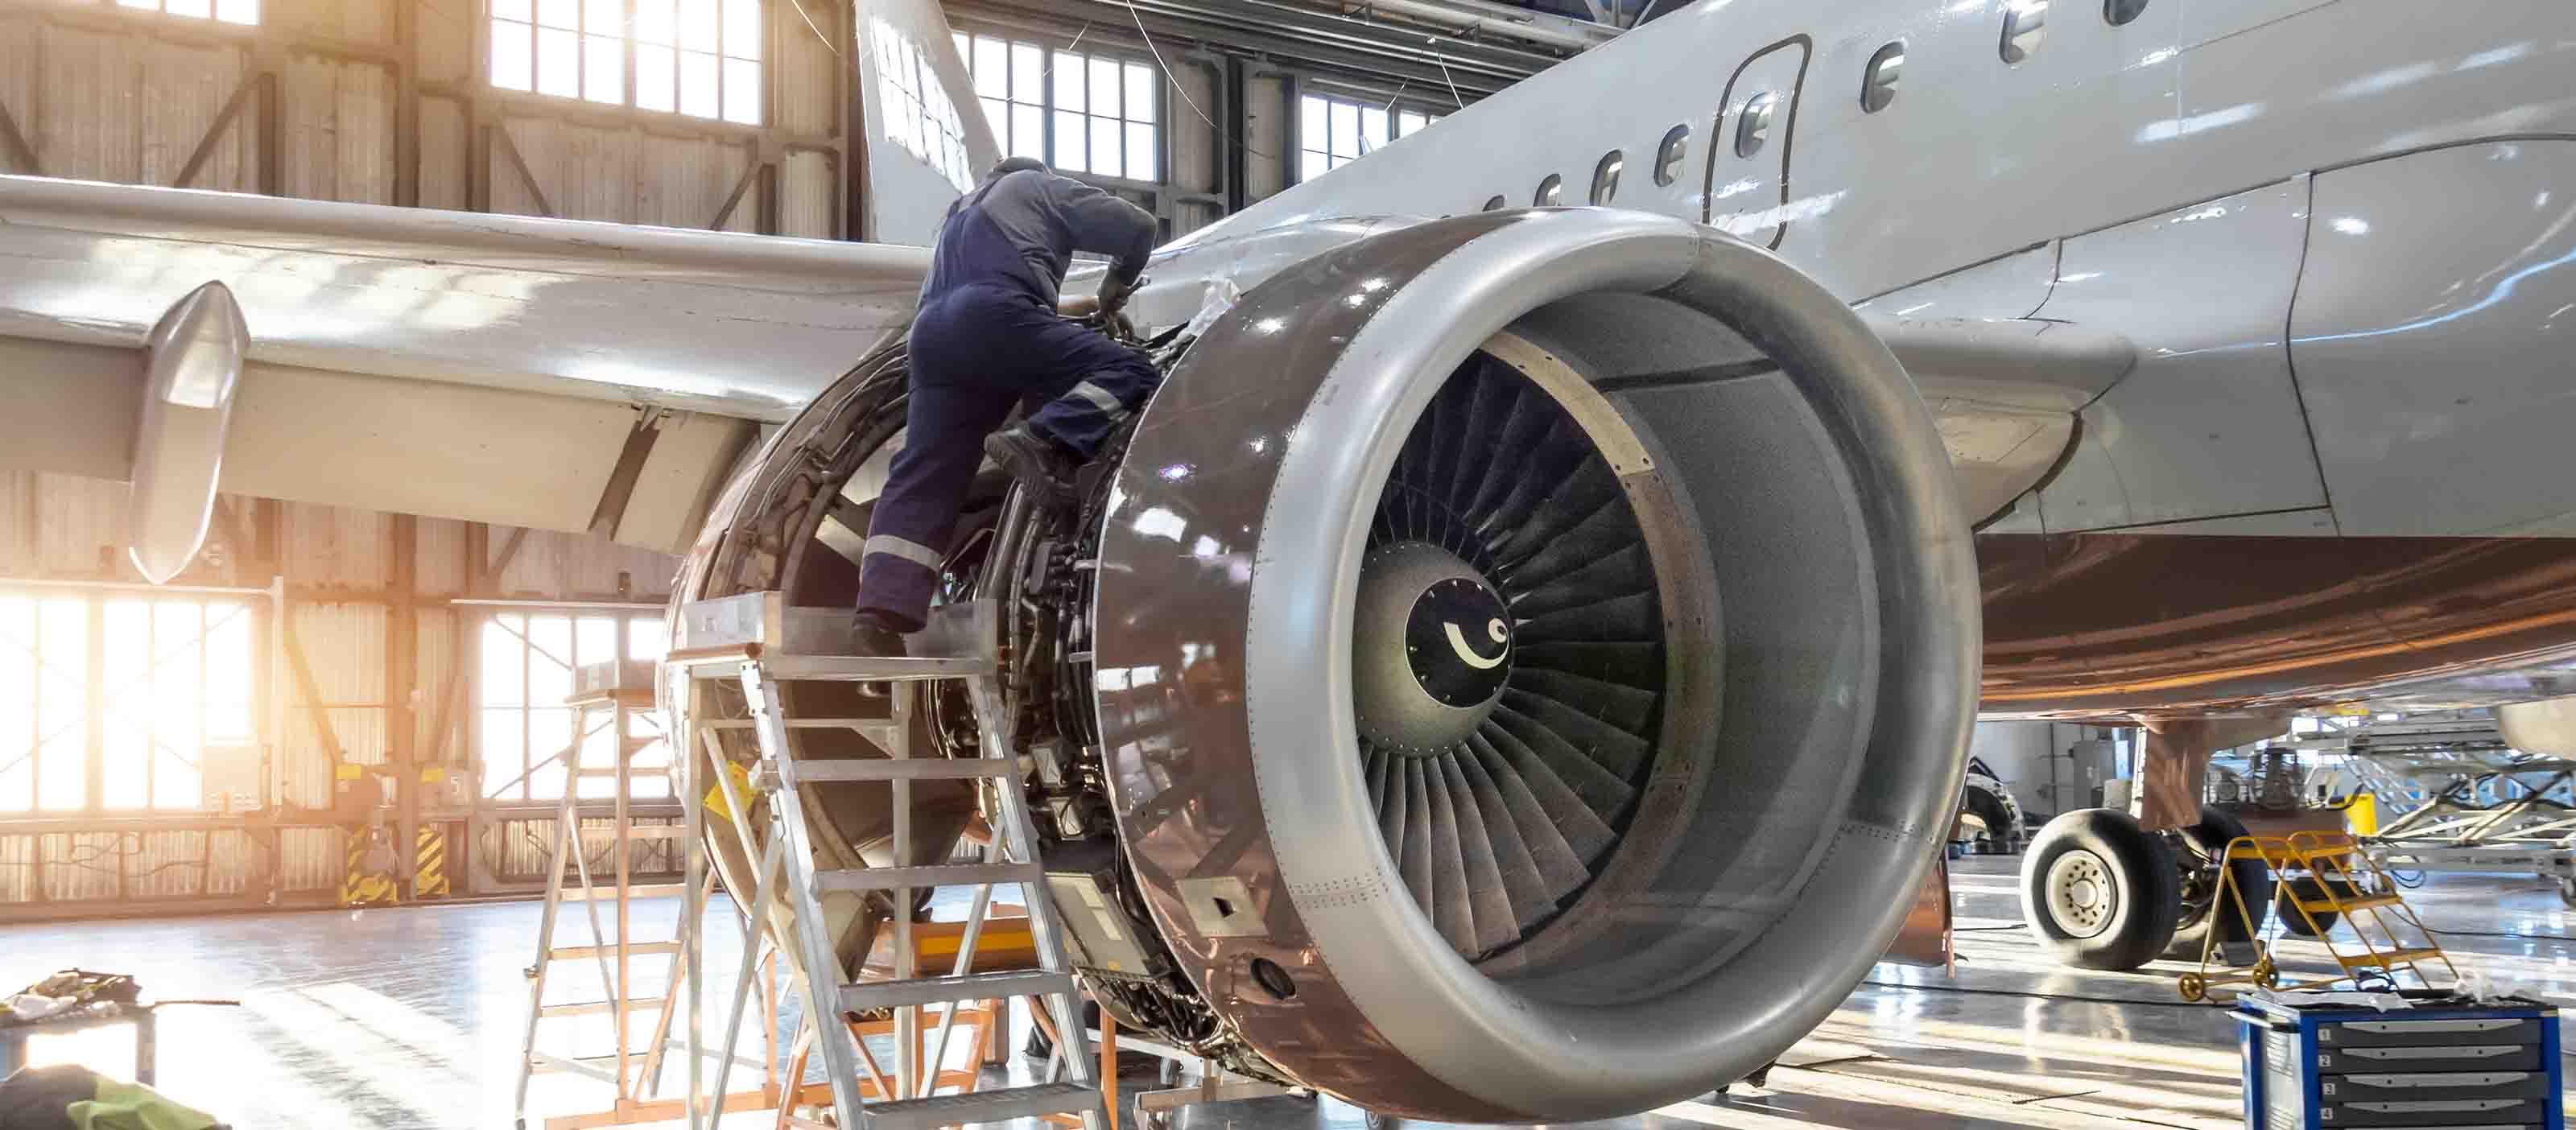 Maintenance aided by GE Digital software to help meet Aviation sustainability targets